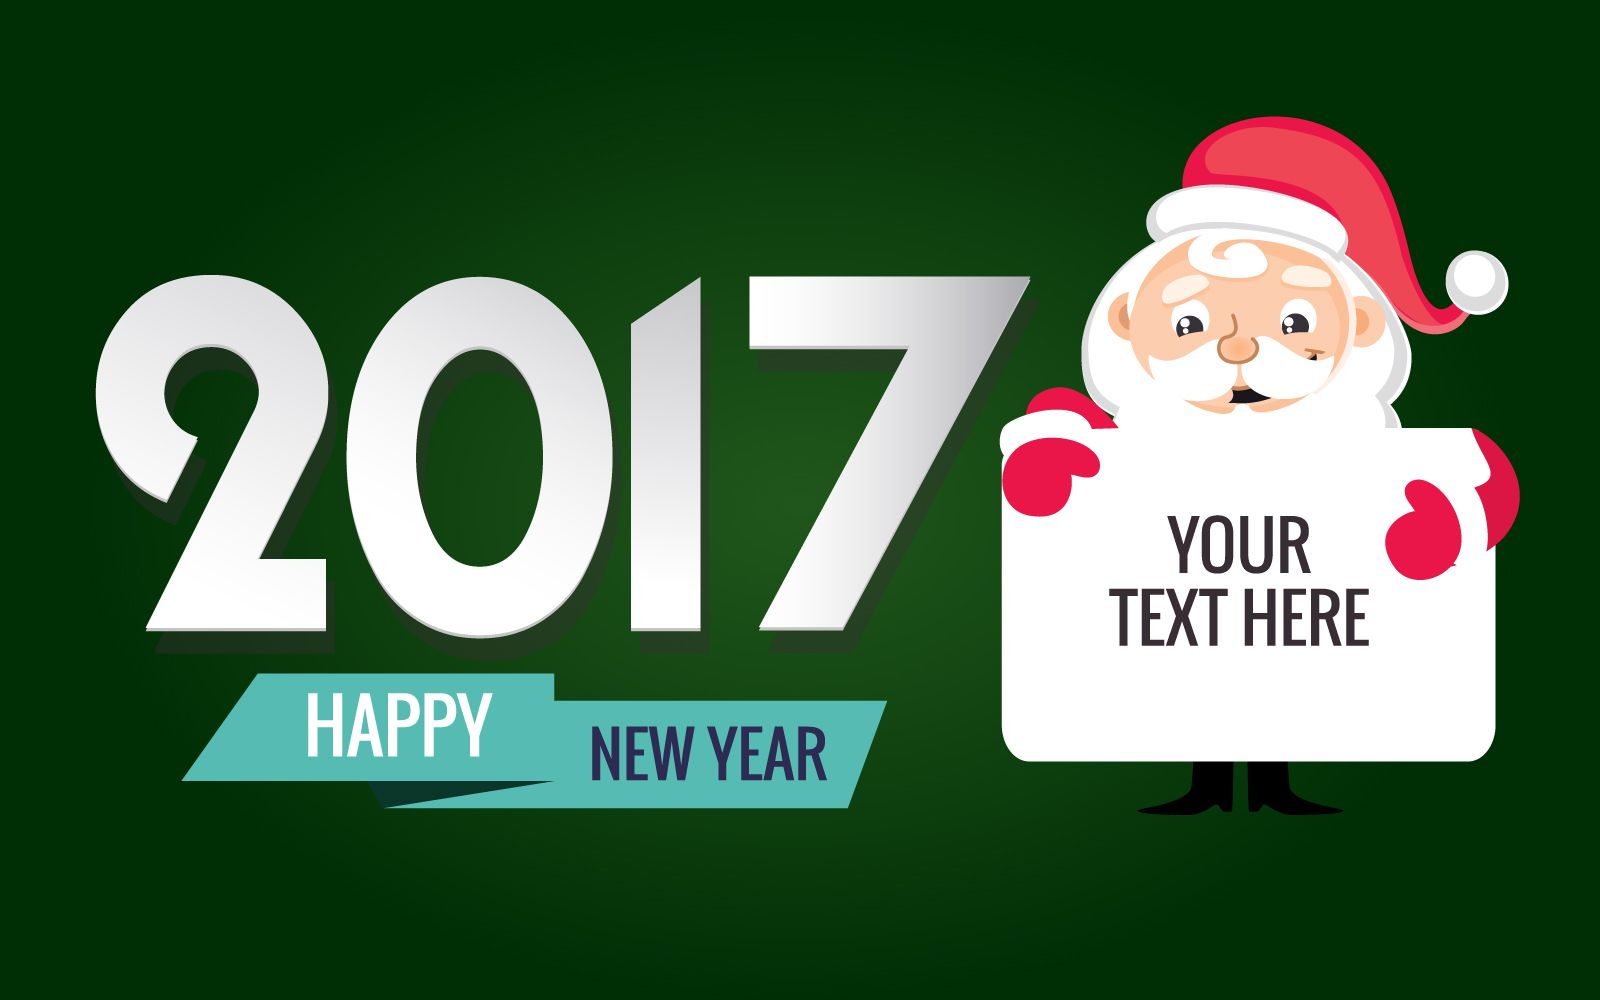 2017 new year and xmas card editor download large image 1600x1000px